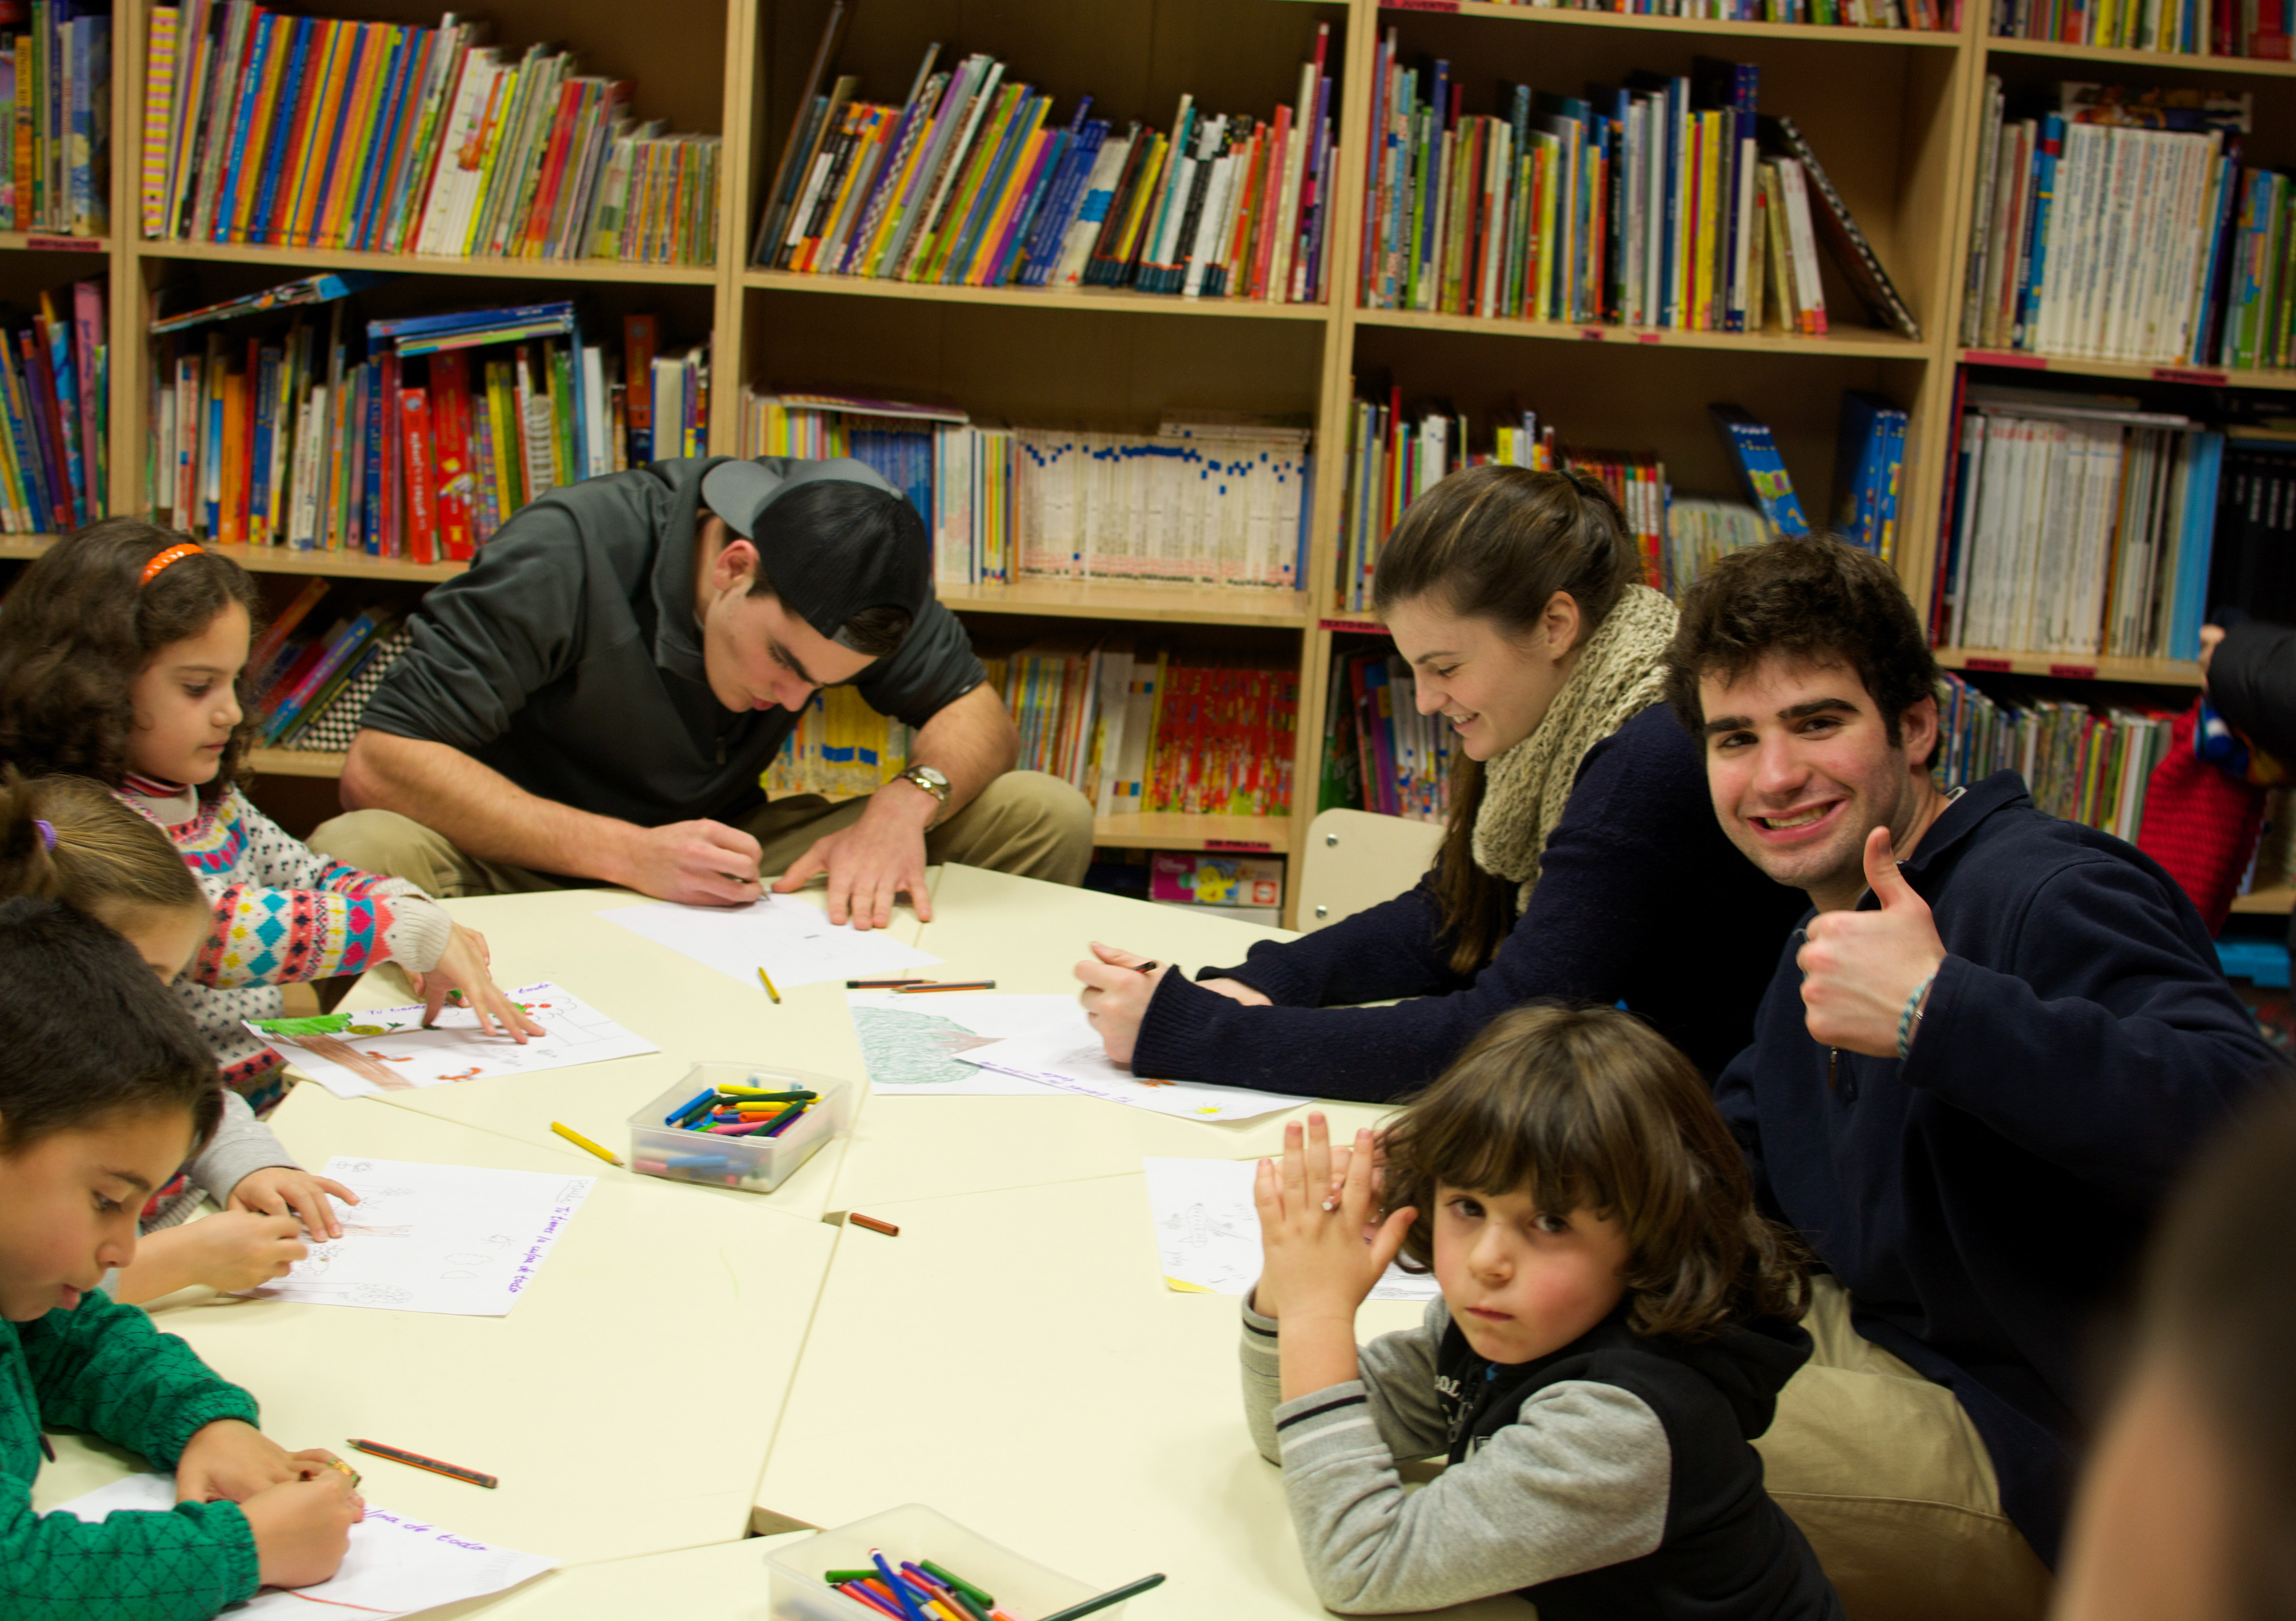 Proctor en Segovia group members volunteer by reading to local students